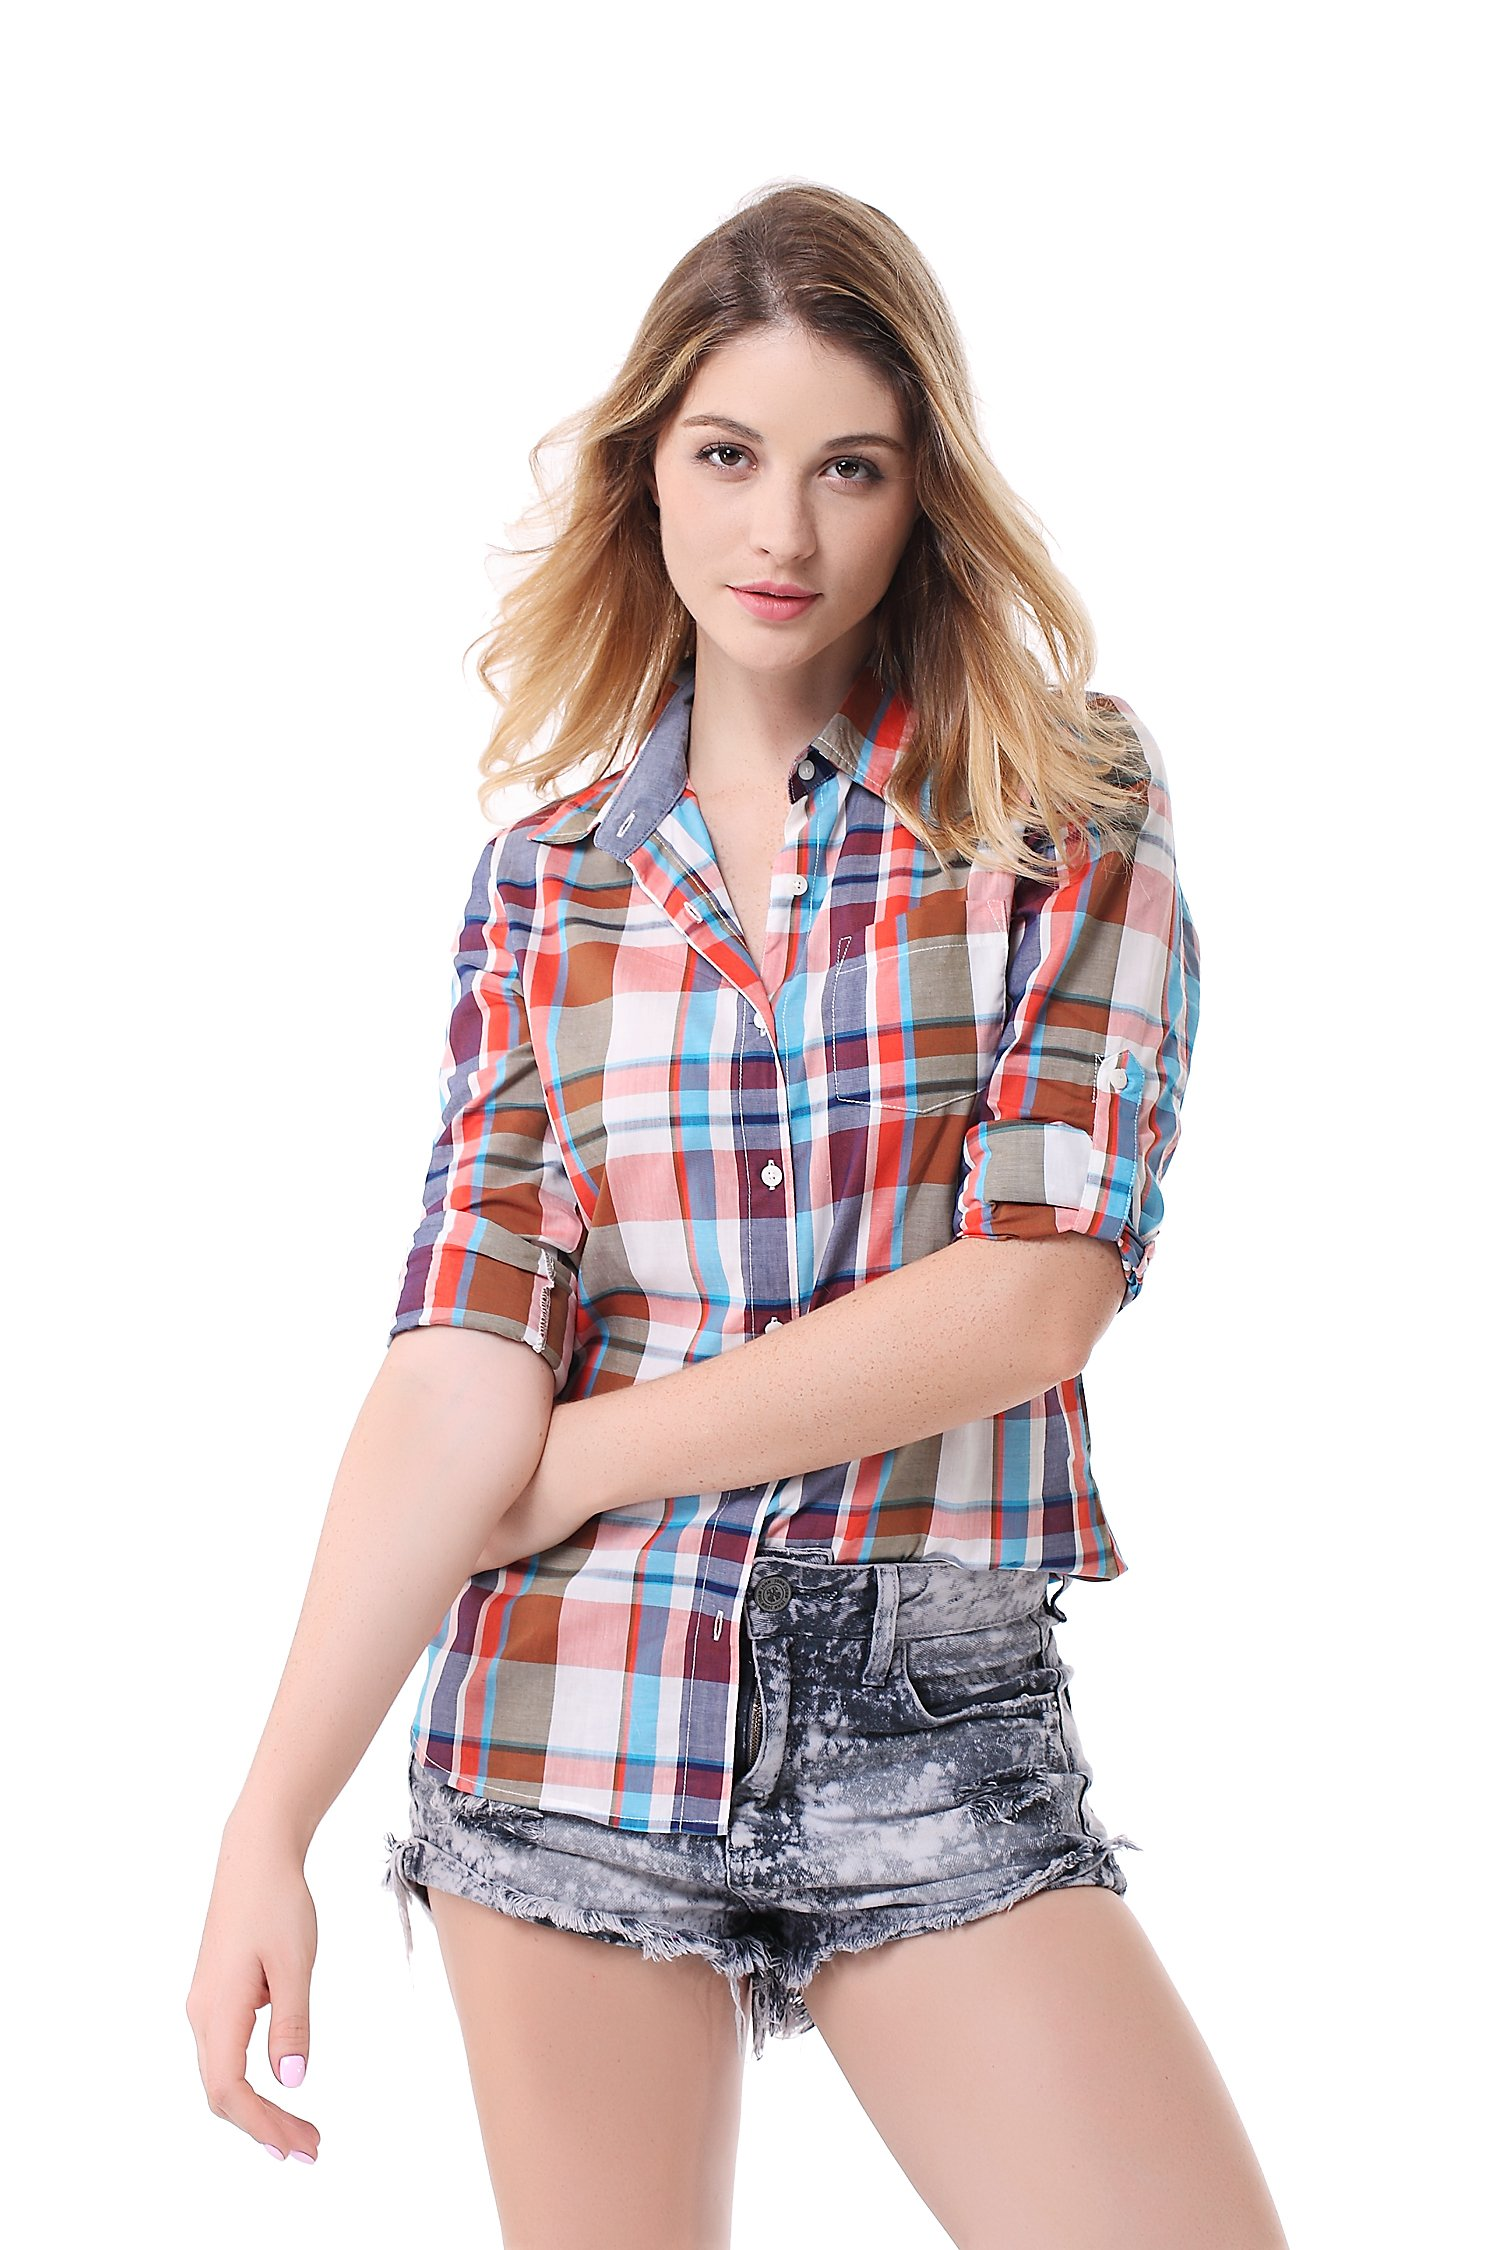 Pau1Hami1ton G-03 Women's Casual Plaid Long Sleeve Blouses Cotton Shirts Tops(L,15)